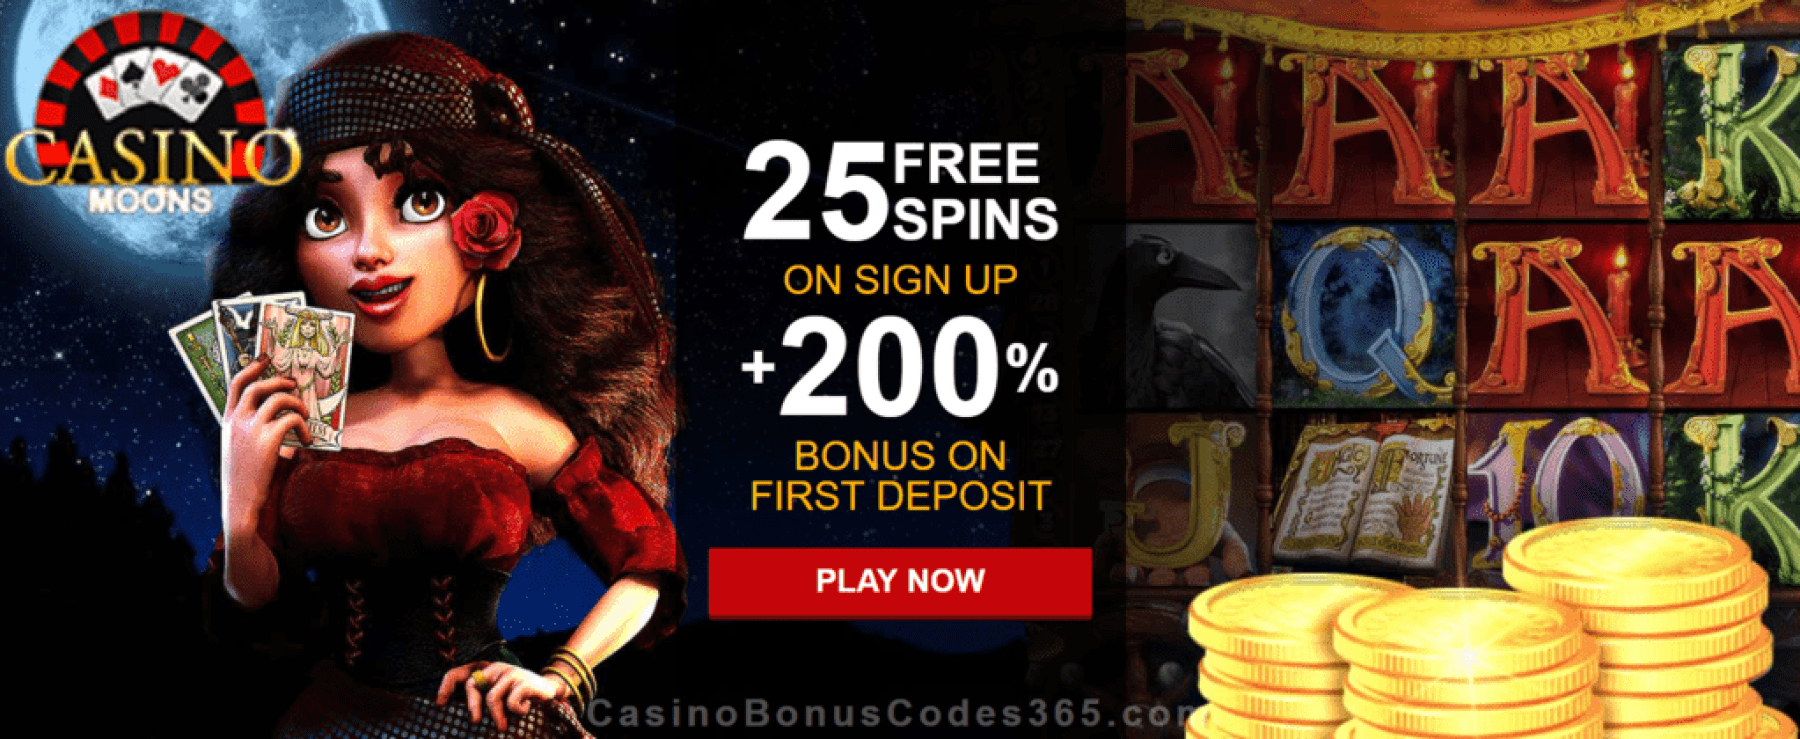 Casino Moons 25 FREE Spins plus 200% Match New Players Sign Up Deal